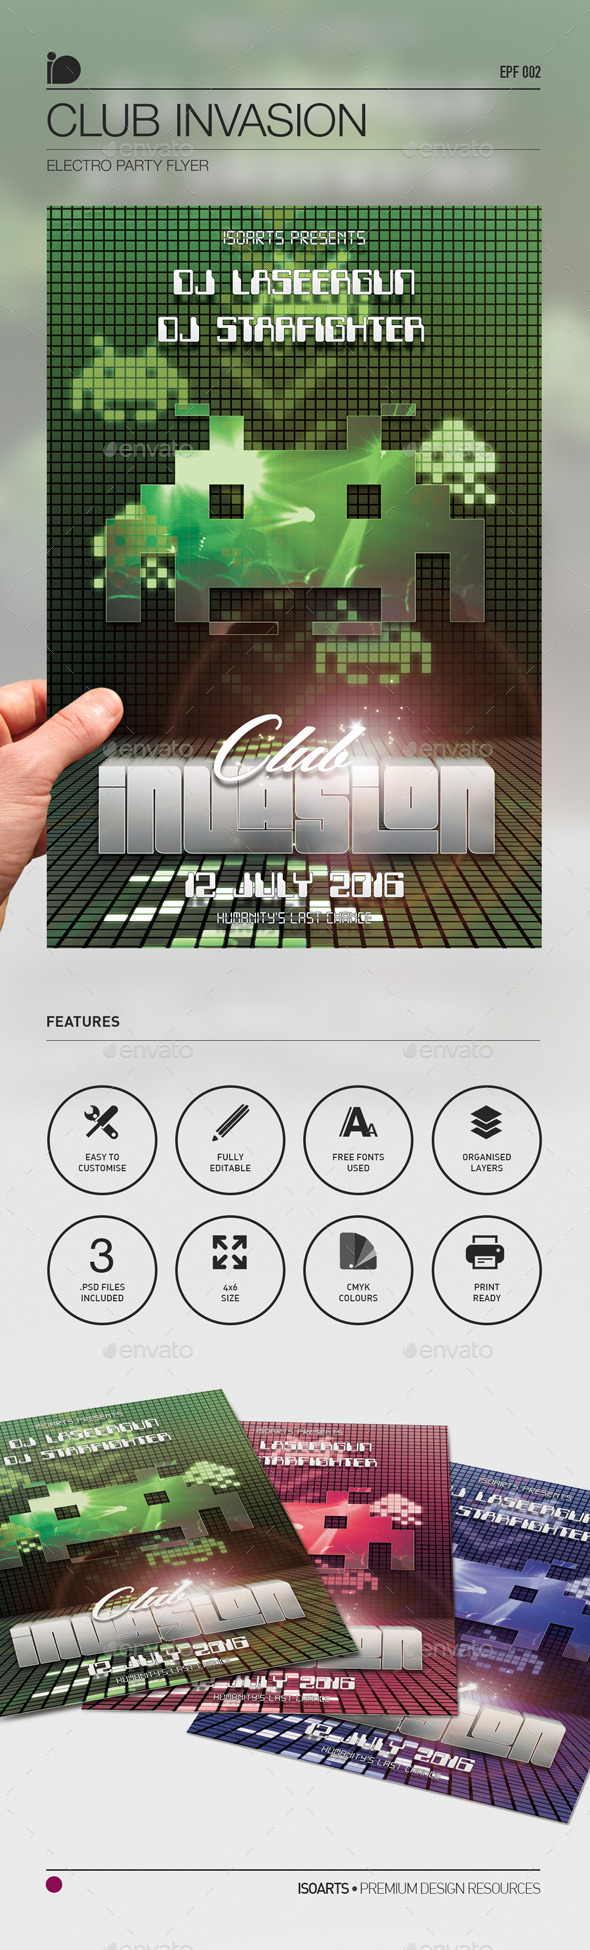 Electro Party Flyer • Club Invaders - Clubs & Parties Events